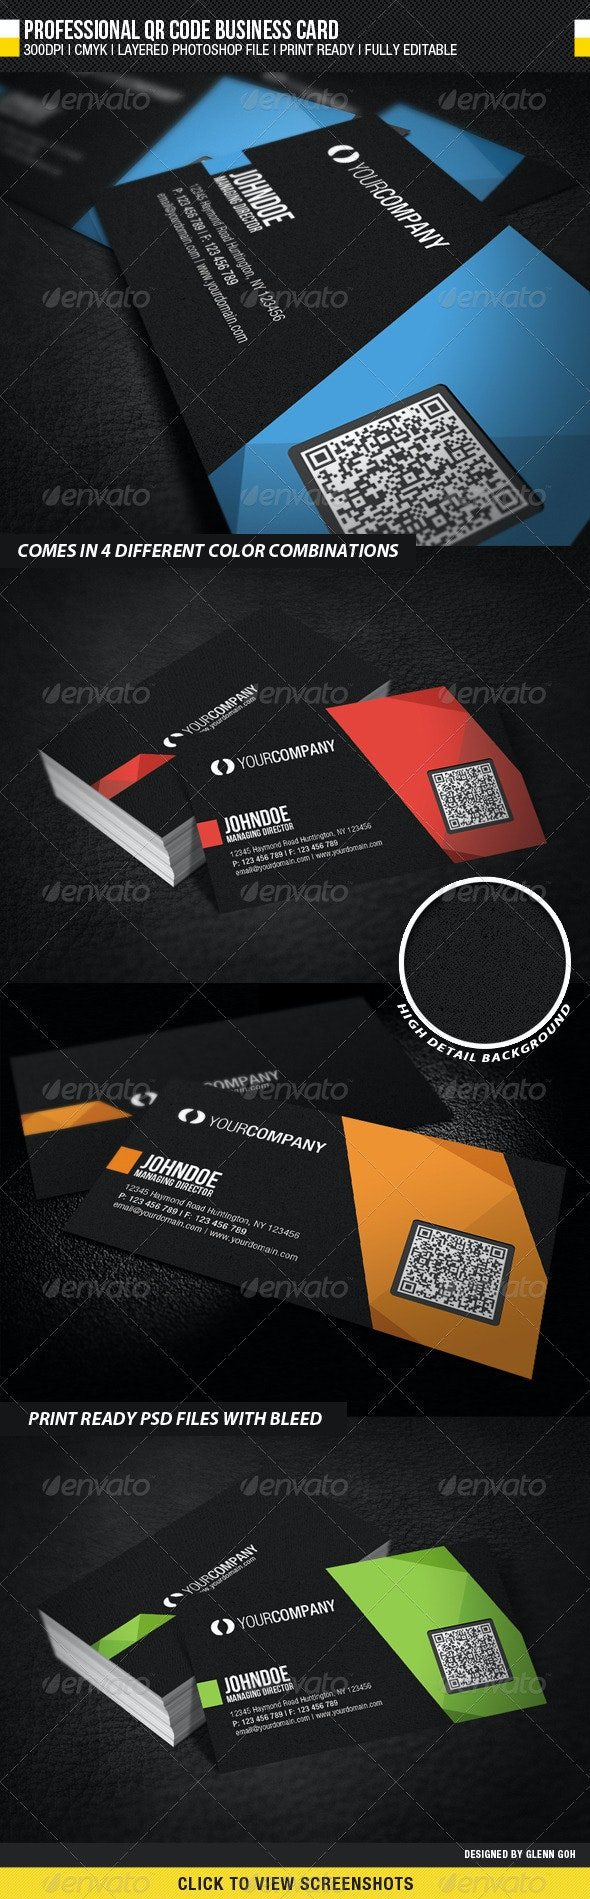 Professional QR Code Business Card - Corporate Business Cards